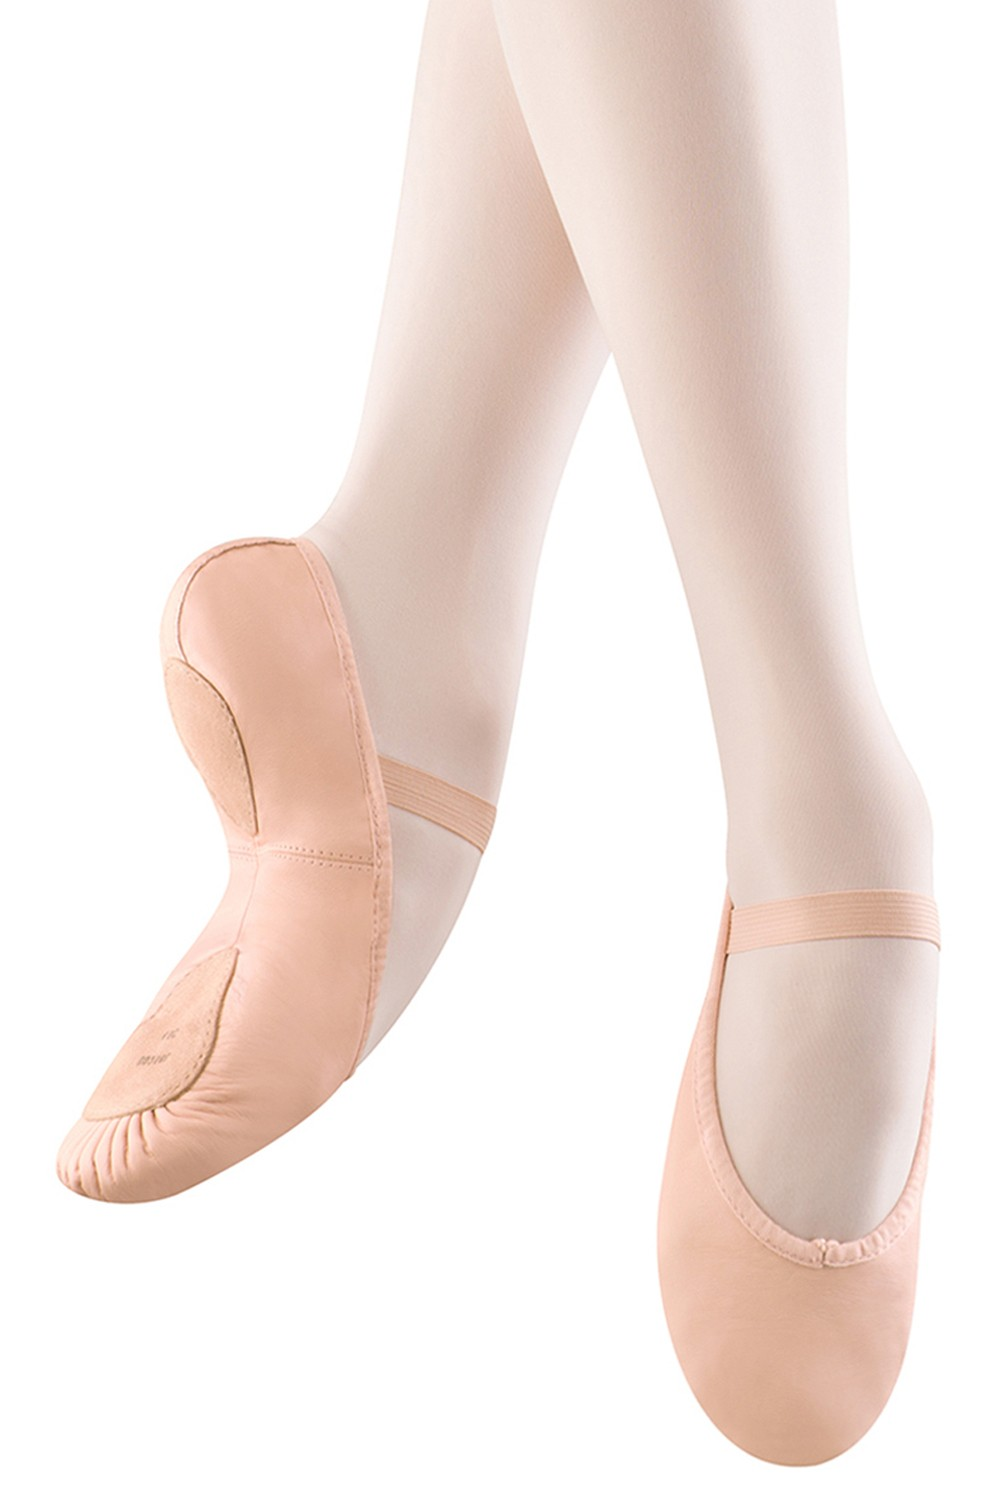 Arise Split Sole - Girls Girl's Ballet Shoes